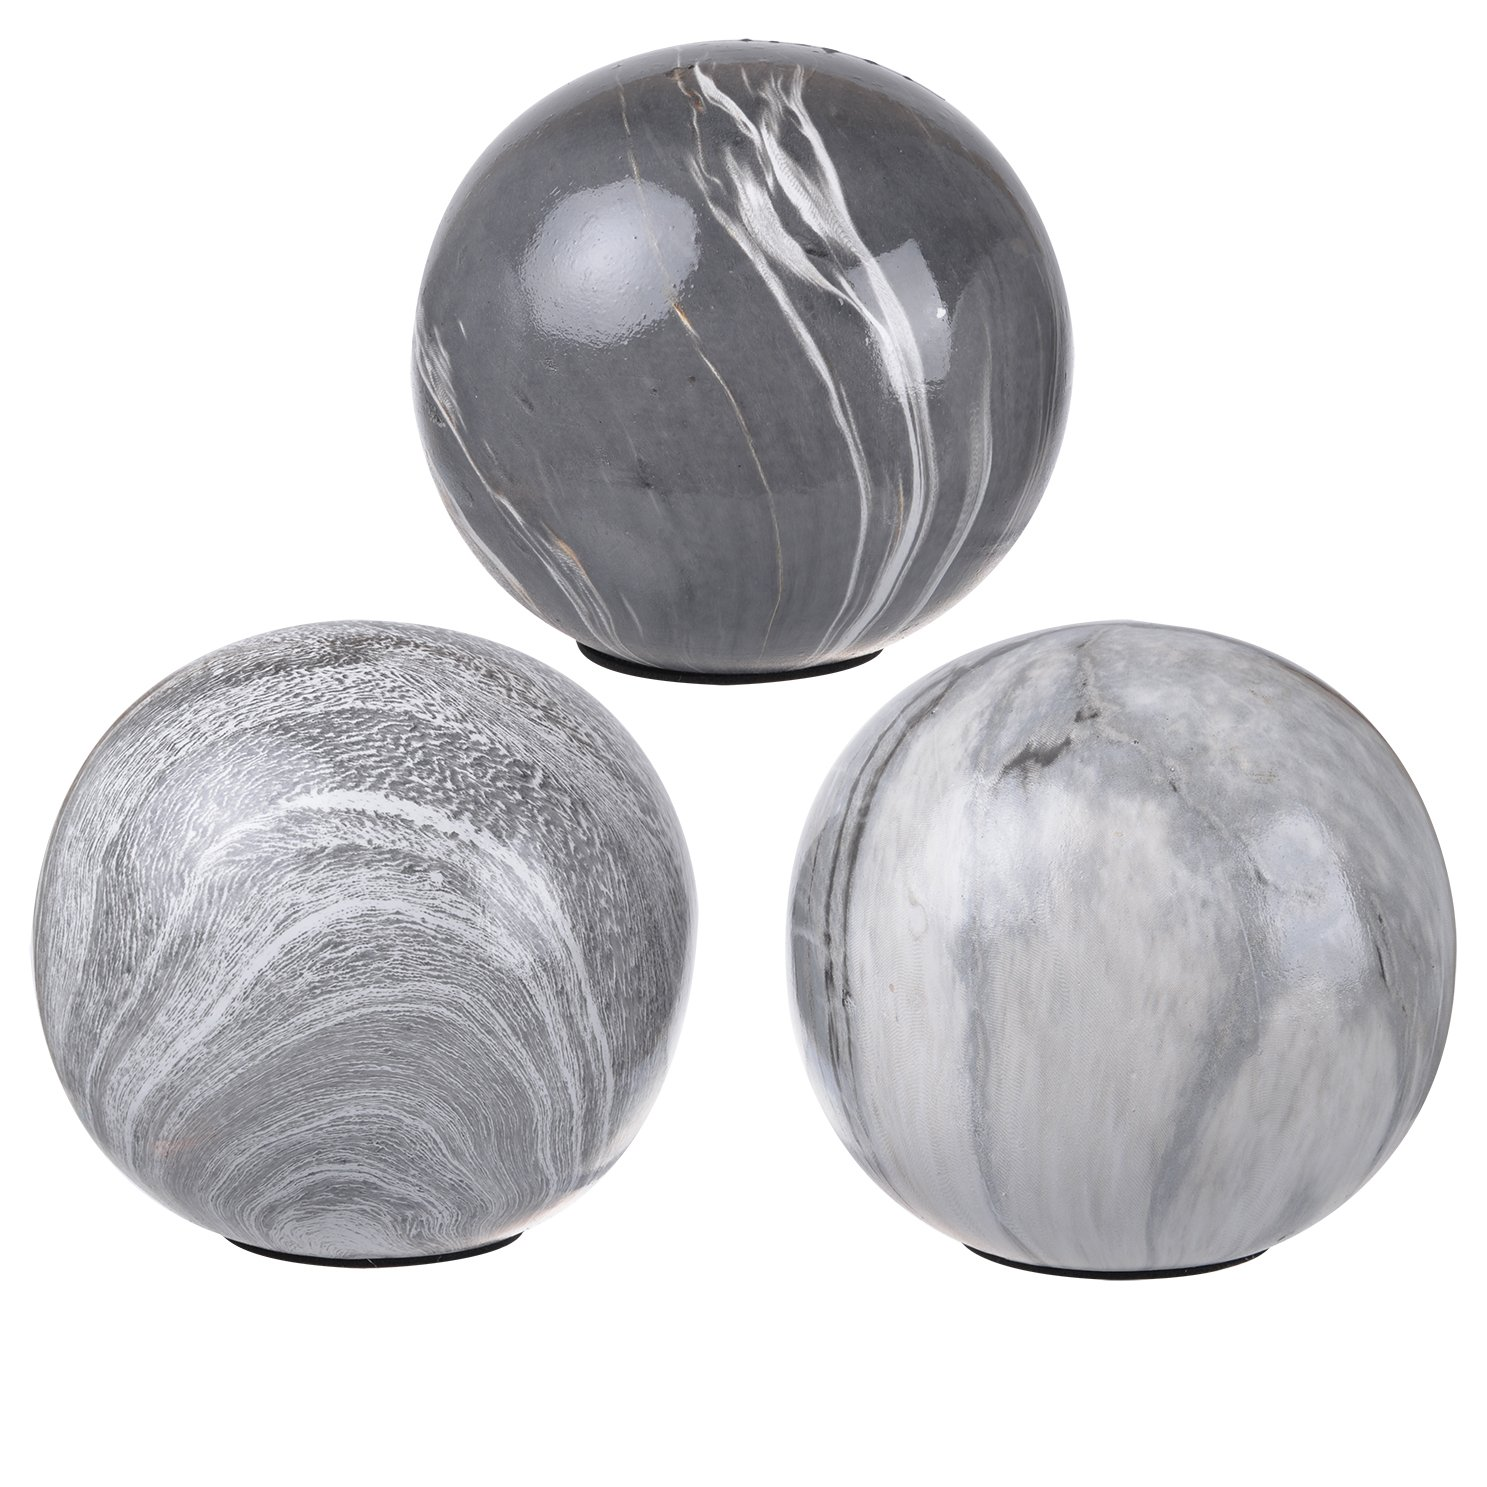 A&B Home Marbleized Ball Accents, Set of 6, 4'' x 4'' x 4'', Gray